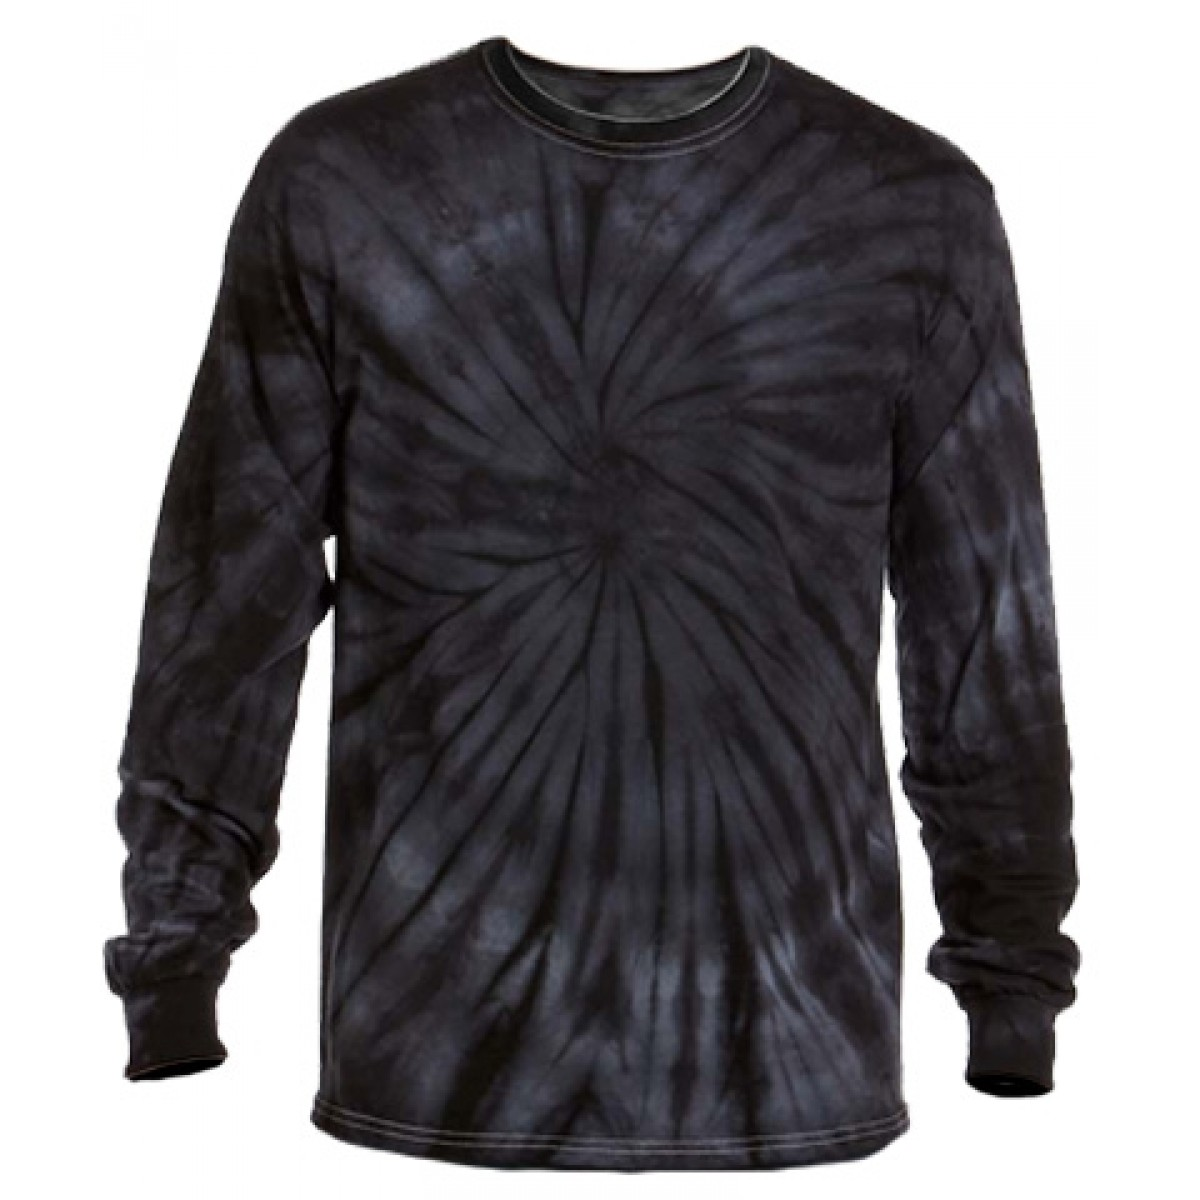 Black Ripple Tie-Dye Long Sleeve Shirt